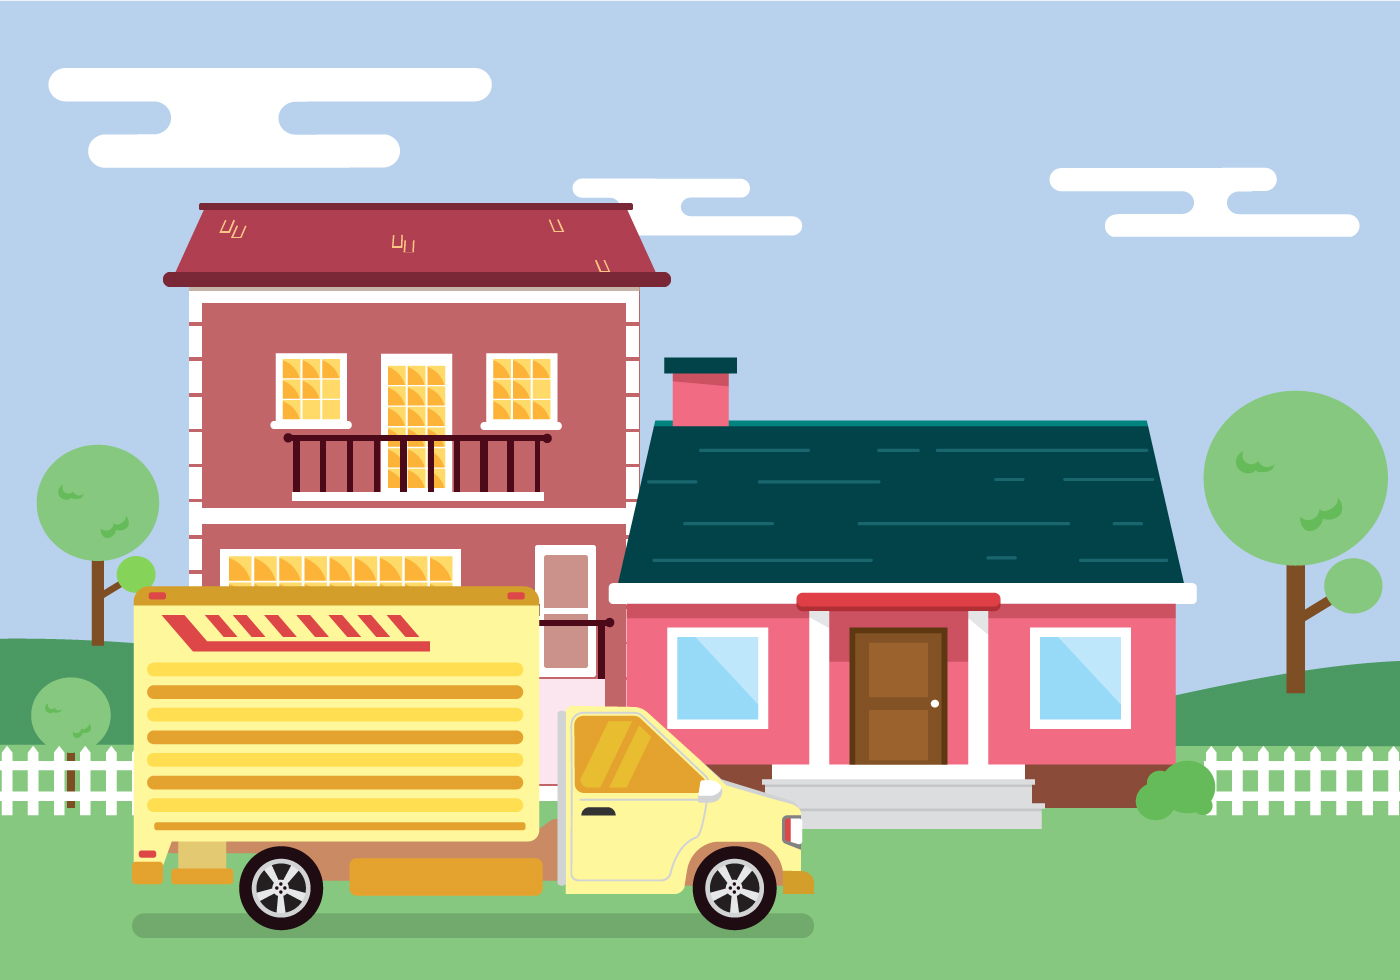 Moving to New House Vector - Download Free Vectors ...